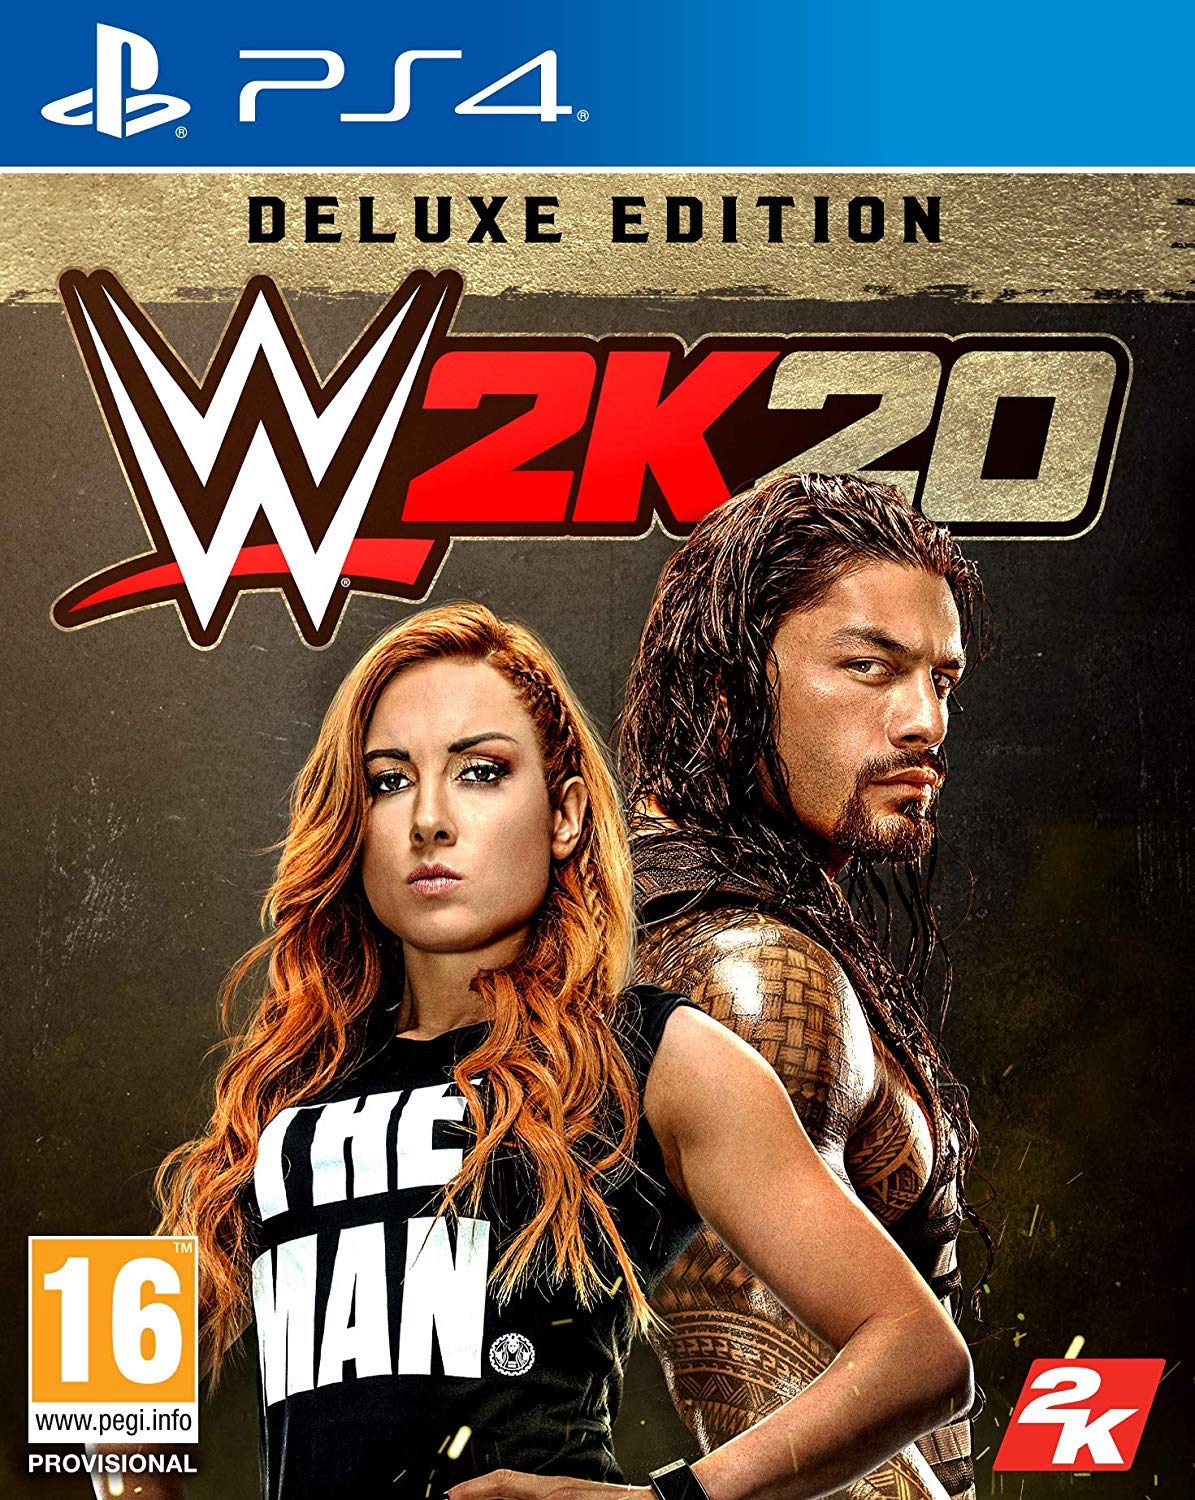 WWE 2K20 Deluxe Edition - PlayStation 4 Játékok